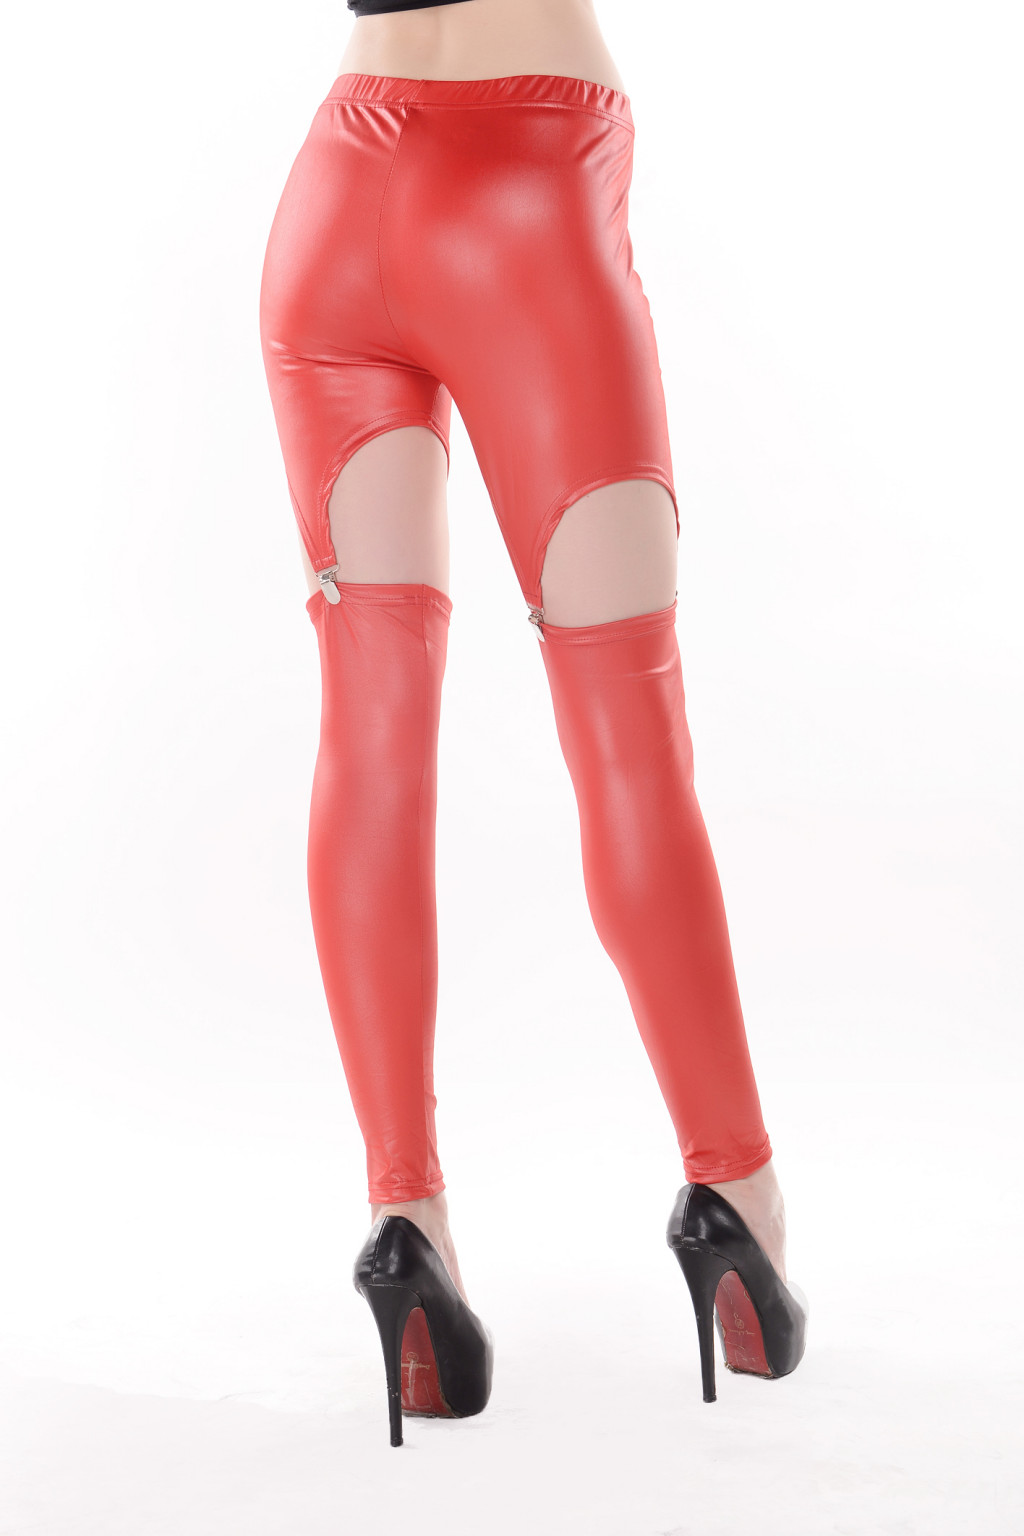 Rock punk garter buckle red/white/black faux leather leggings tights o/s @y178